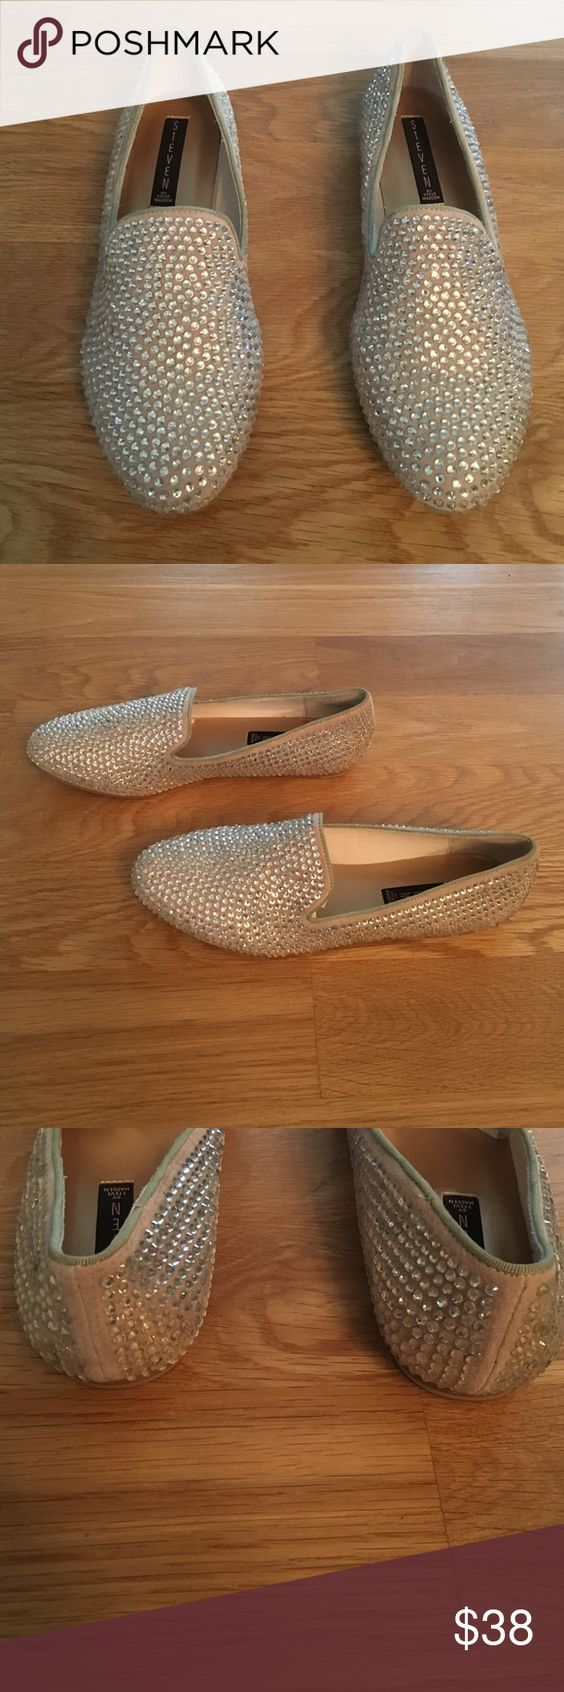 Steve Madden studded flats Steve Madden rhinestone studded flats size 8.5 in excellent condition. Worn once briefly. I do not have the box. Steve Madden Shoes Flats & Loafers